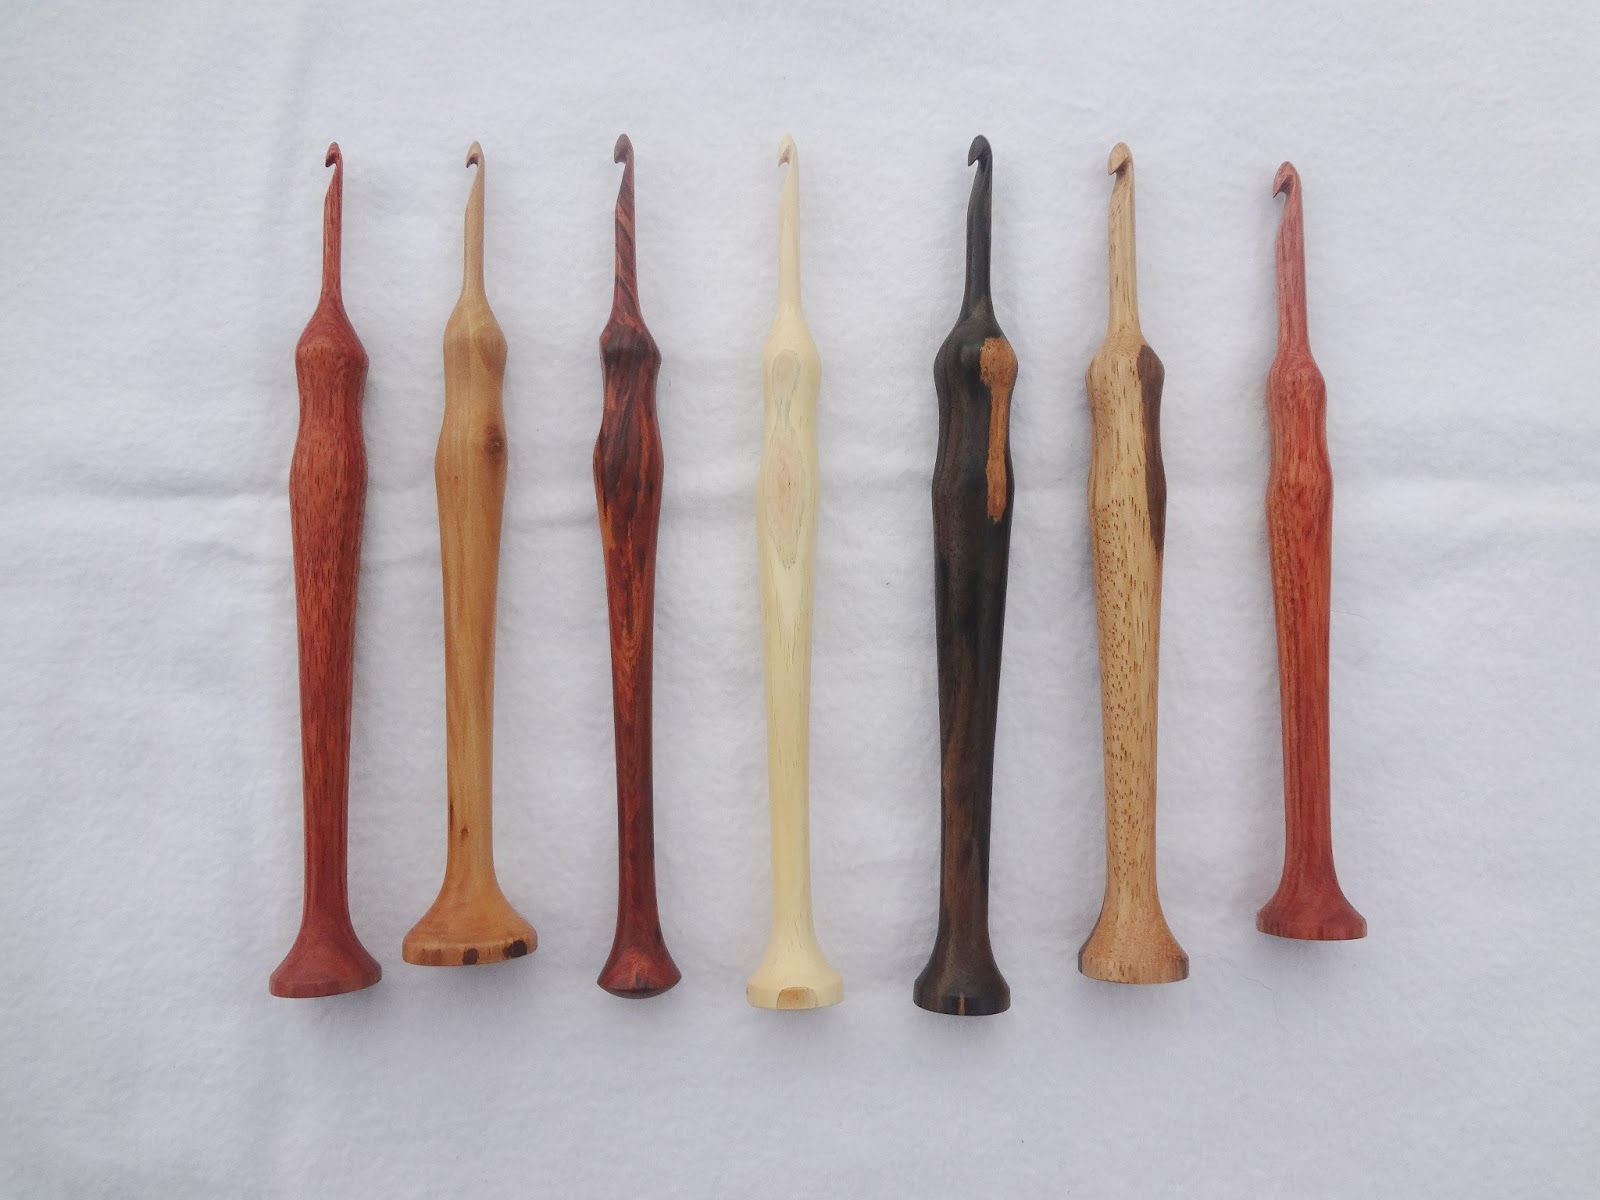 Hand turned wooden crochet hooks by Jim Price, of Jimbo's Front Porch.